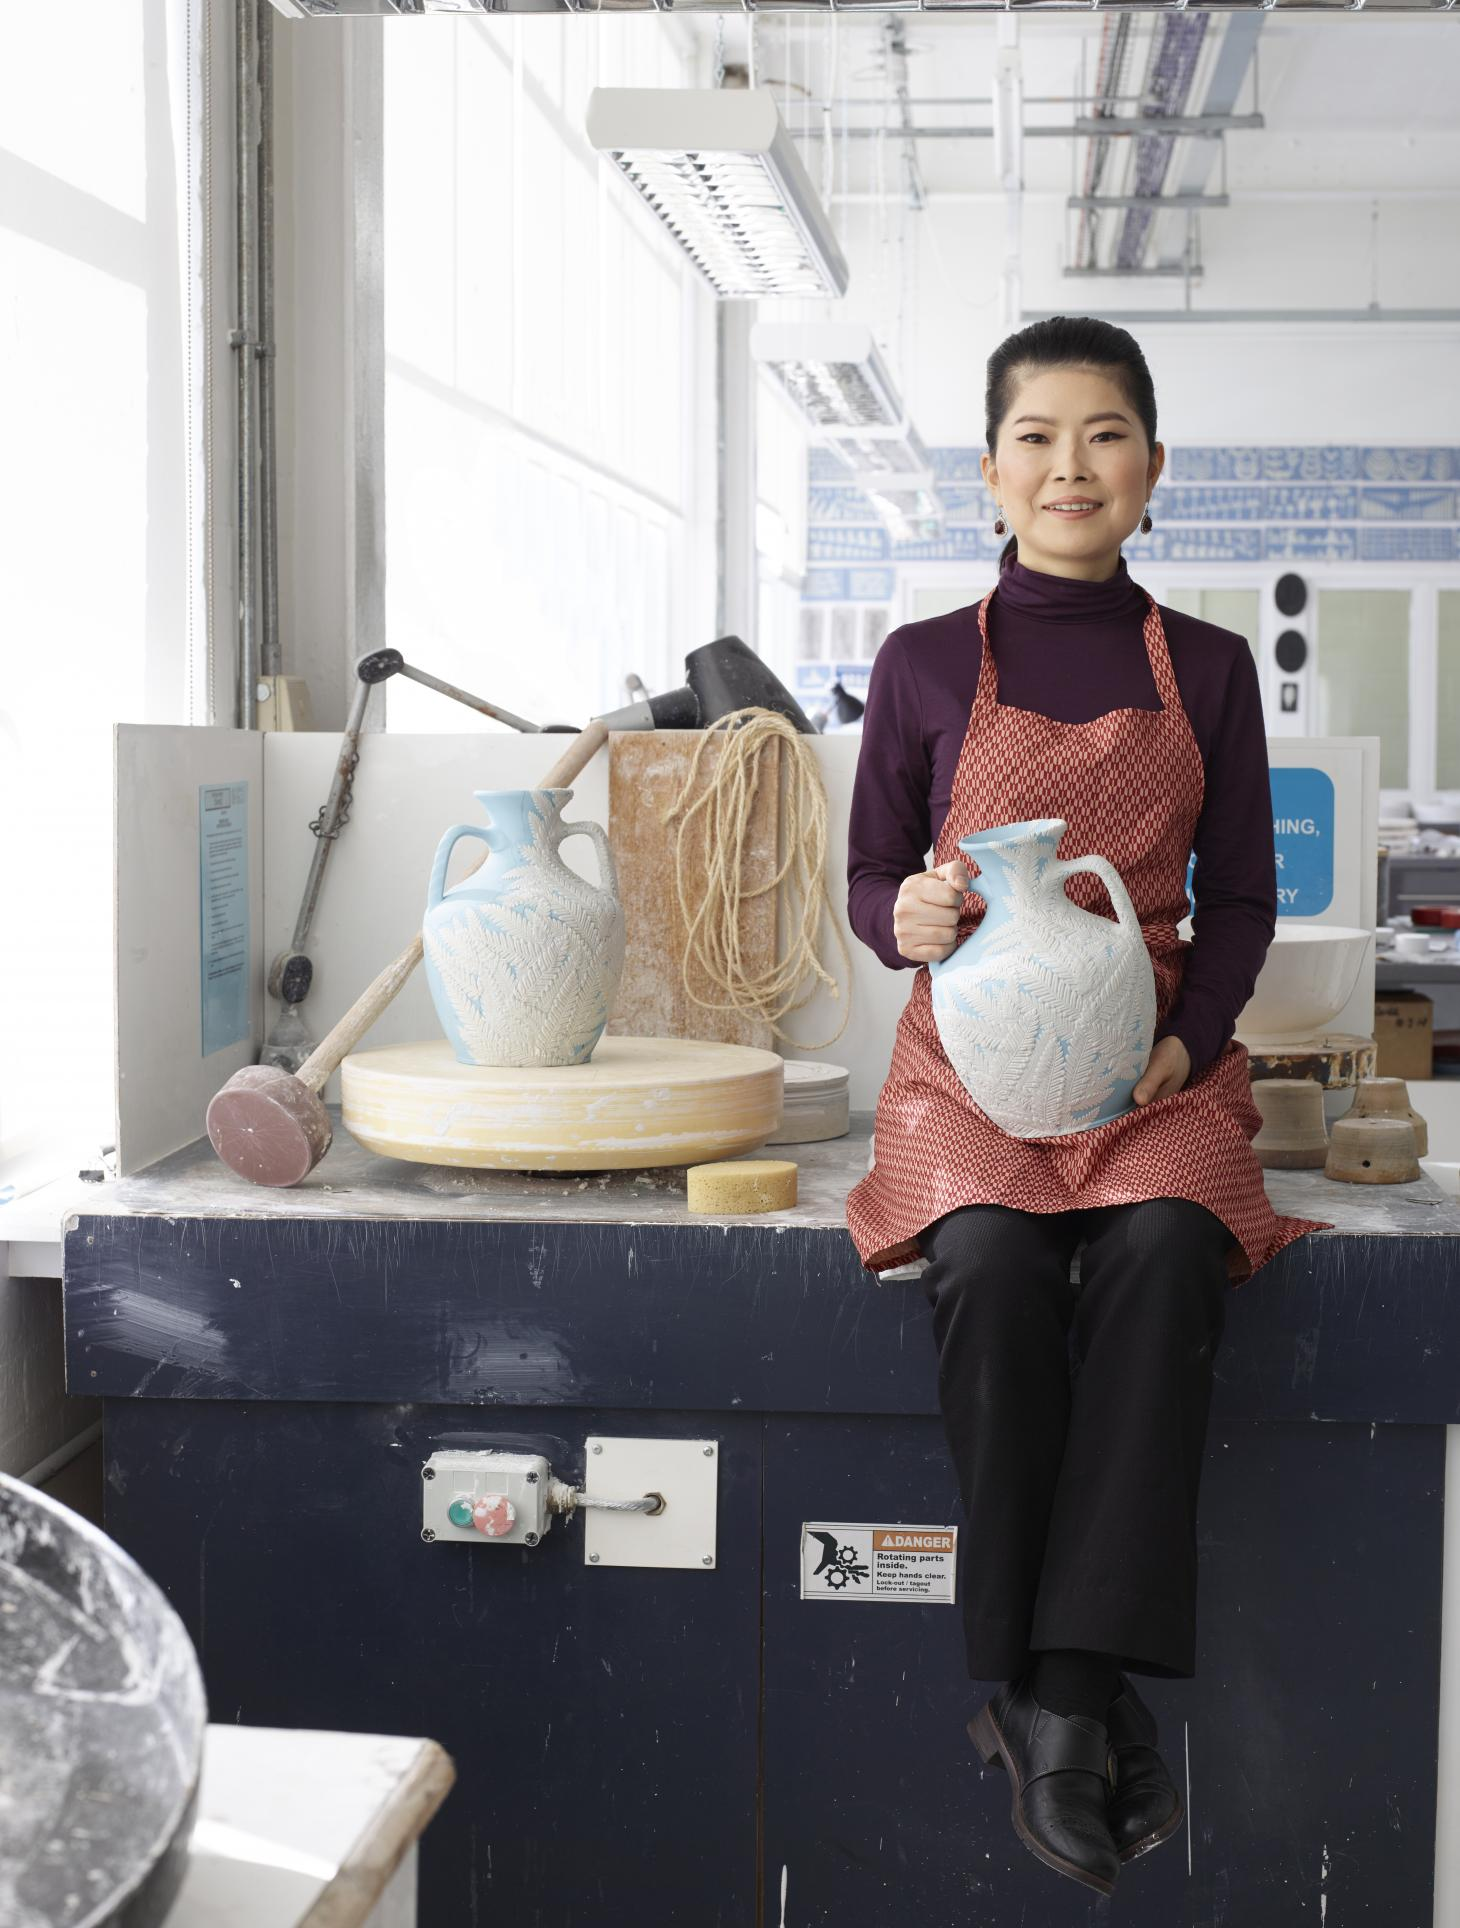 Hosono at the Wedgwood factory with Shōka her take on the iconic Wedgwood Portland Vase, courtesy of Wedgwood